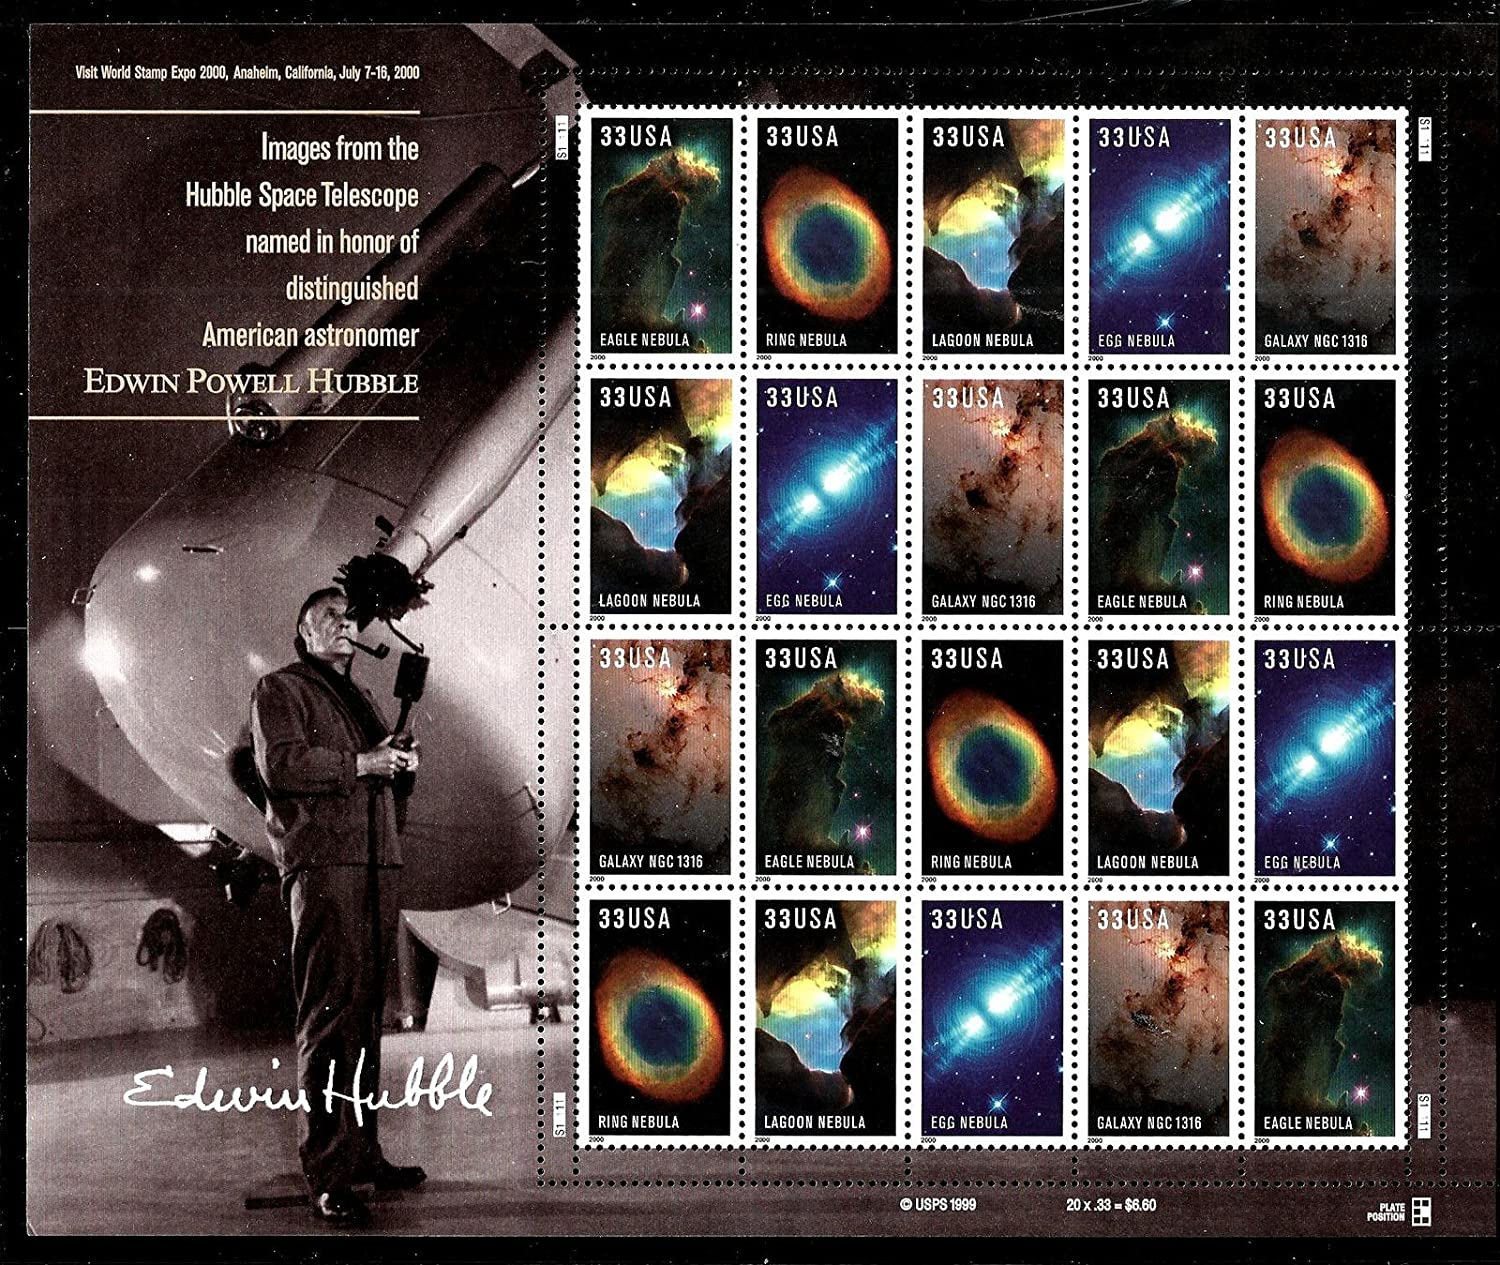 2000 HUBBLE IMAGES  3388a Pane of 20 x 33 cents US Postage Stamps